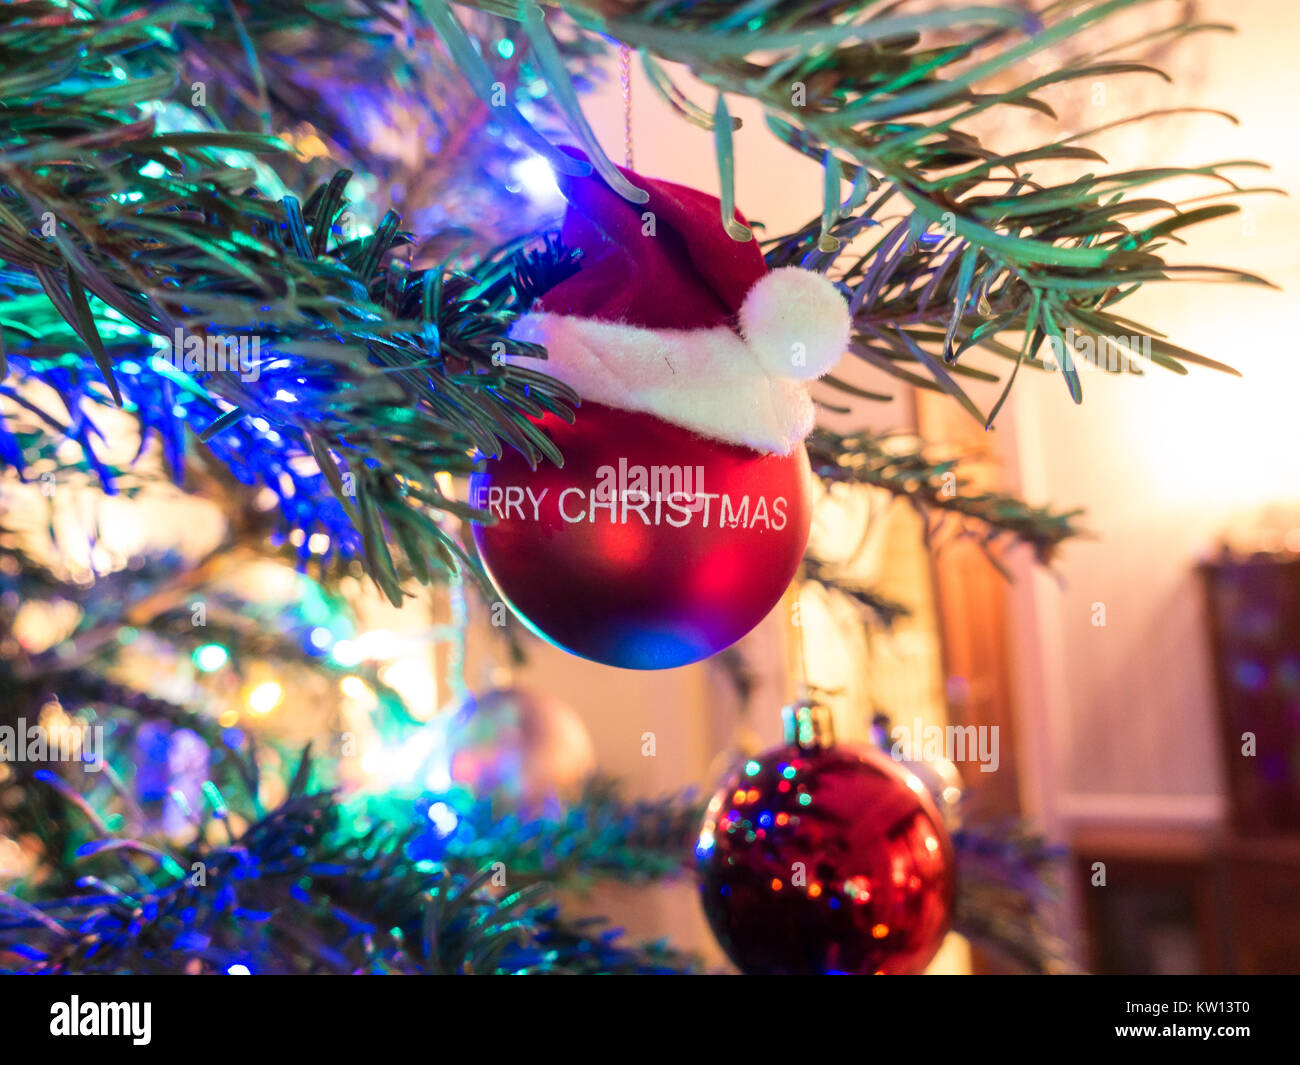 a-close-up-of-a-christmas-tree-decorated-with-baubles-and-colourful-KW13T0.jpg